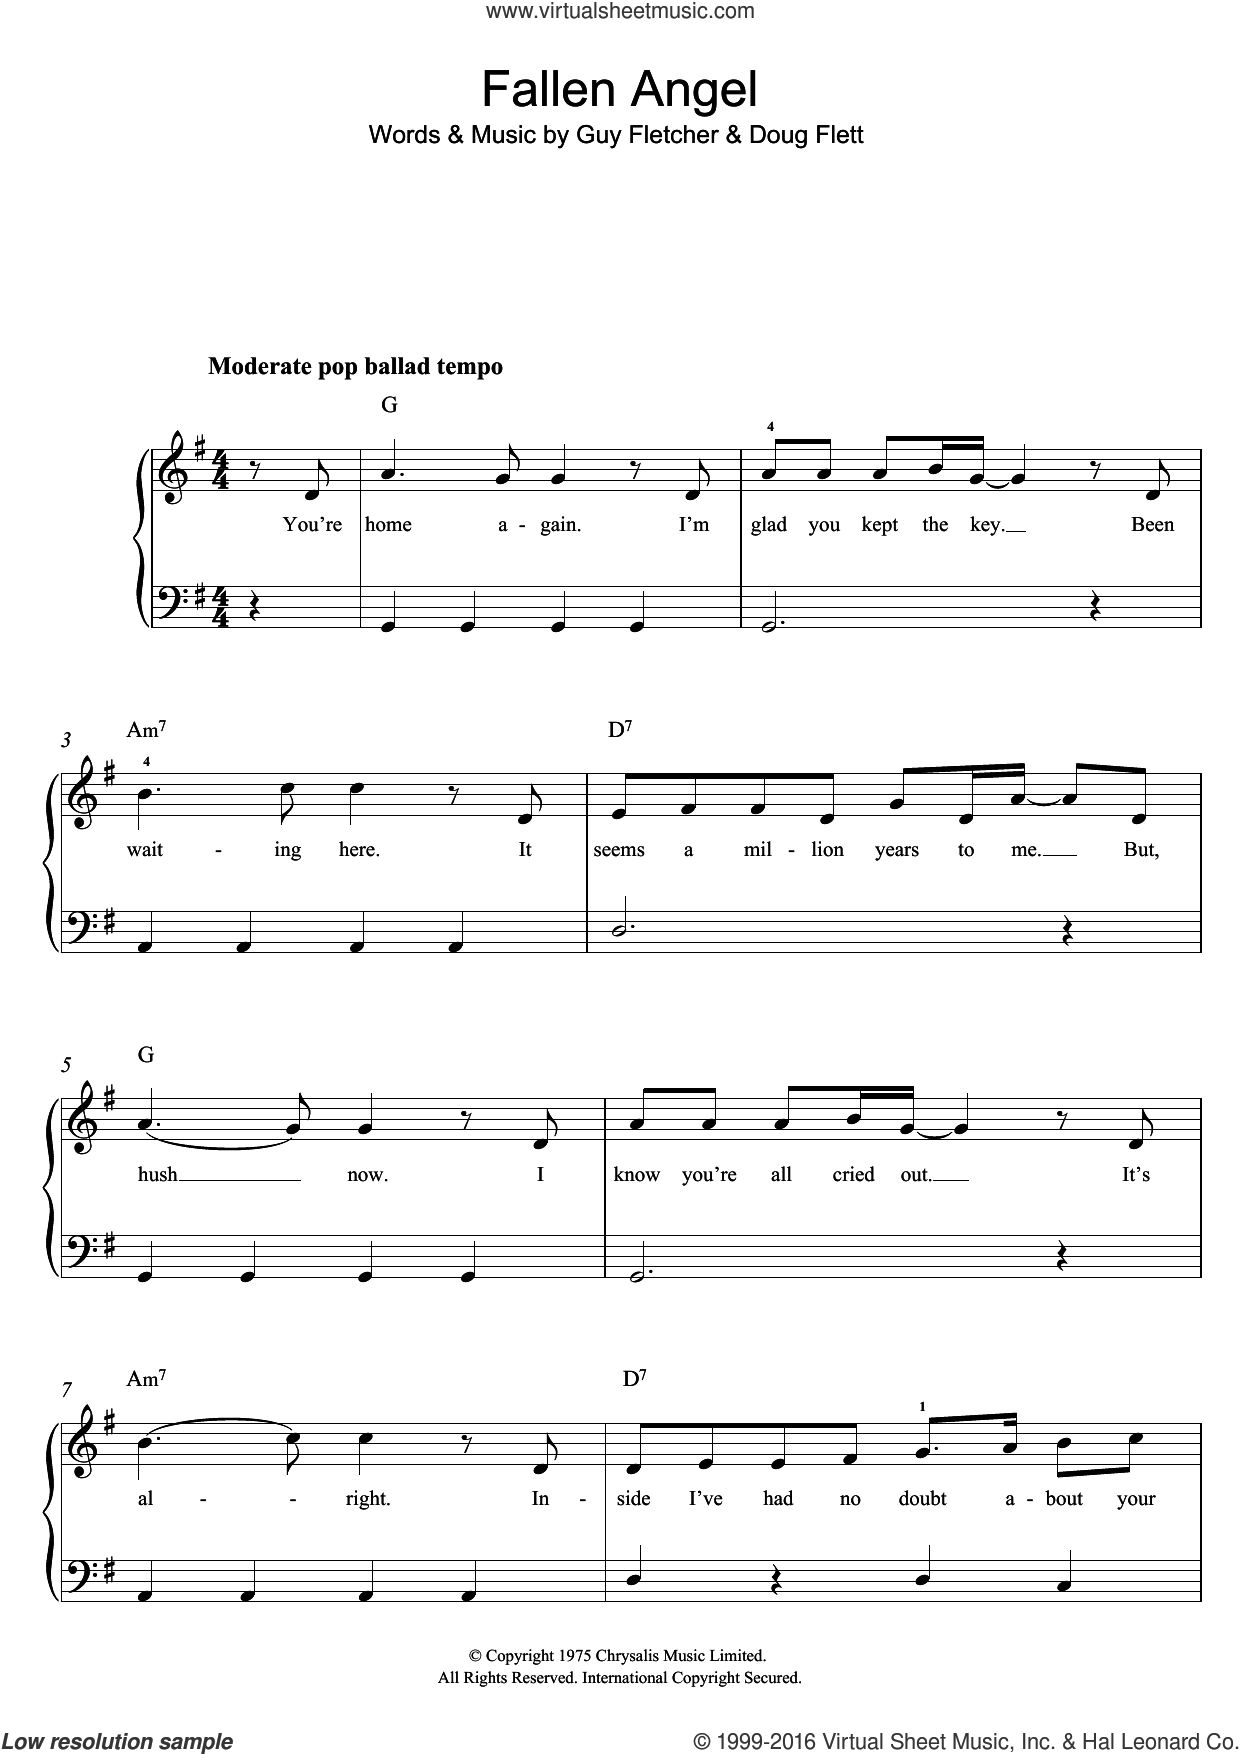 Fallen Angel sheet music for piano solo by Frankie Valli, Doug Flett and Guy Fletcher, easy skill level